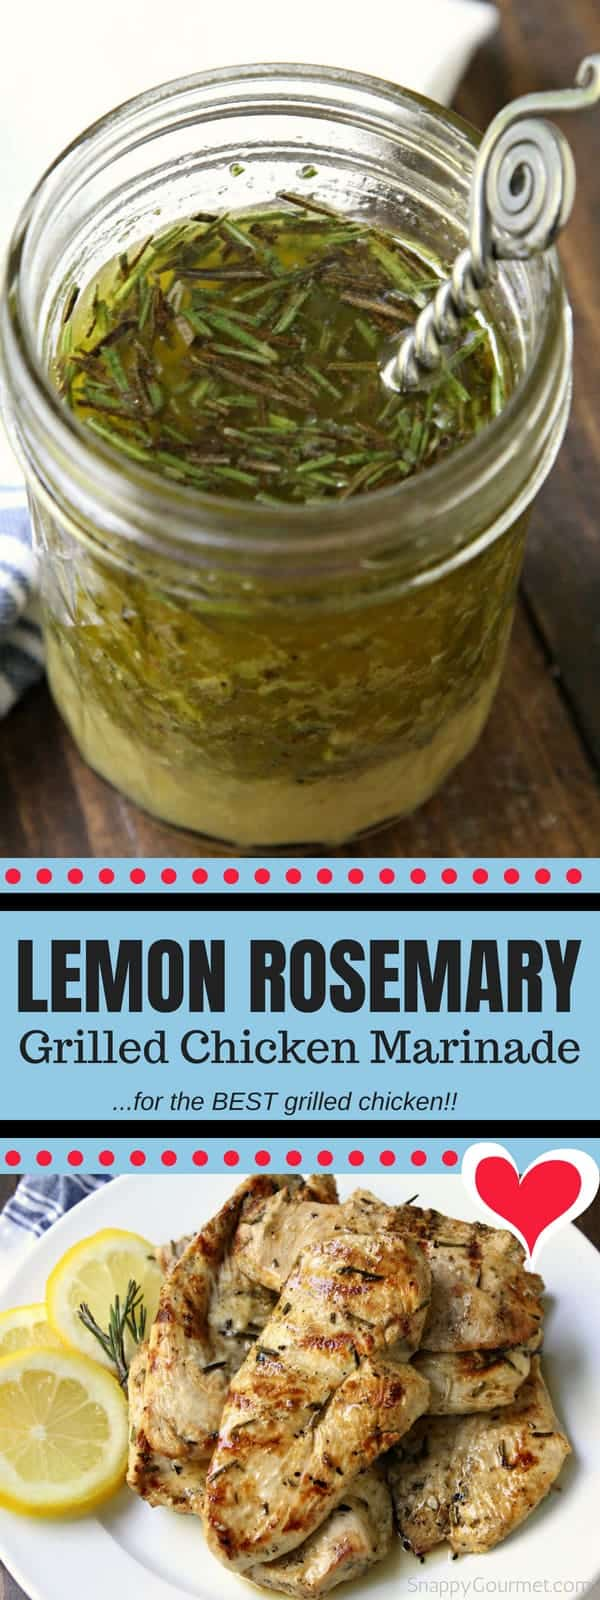 Lemon Rosemary Grilled Chicken Marinade - easy homemade marinade for the best grilled chicken!